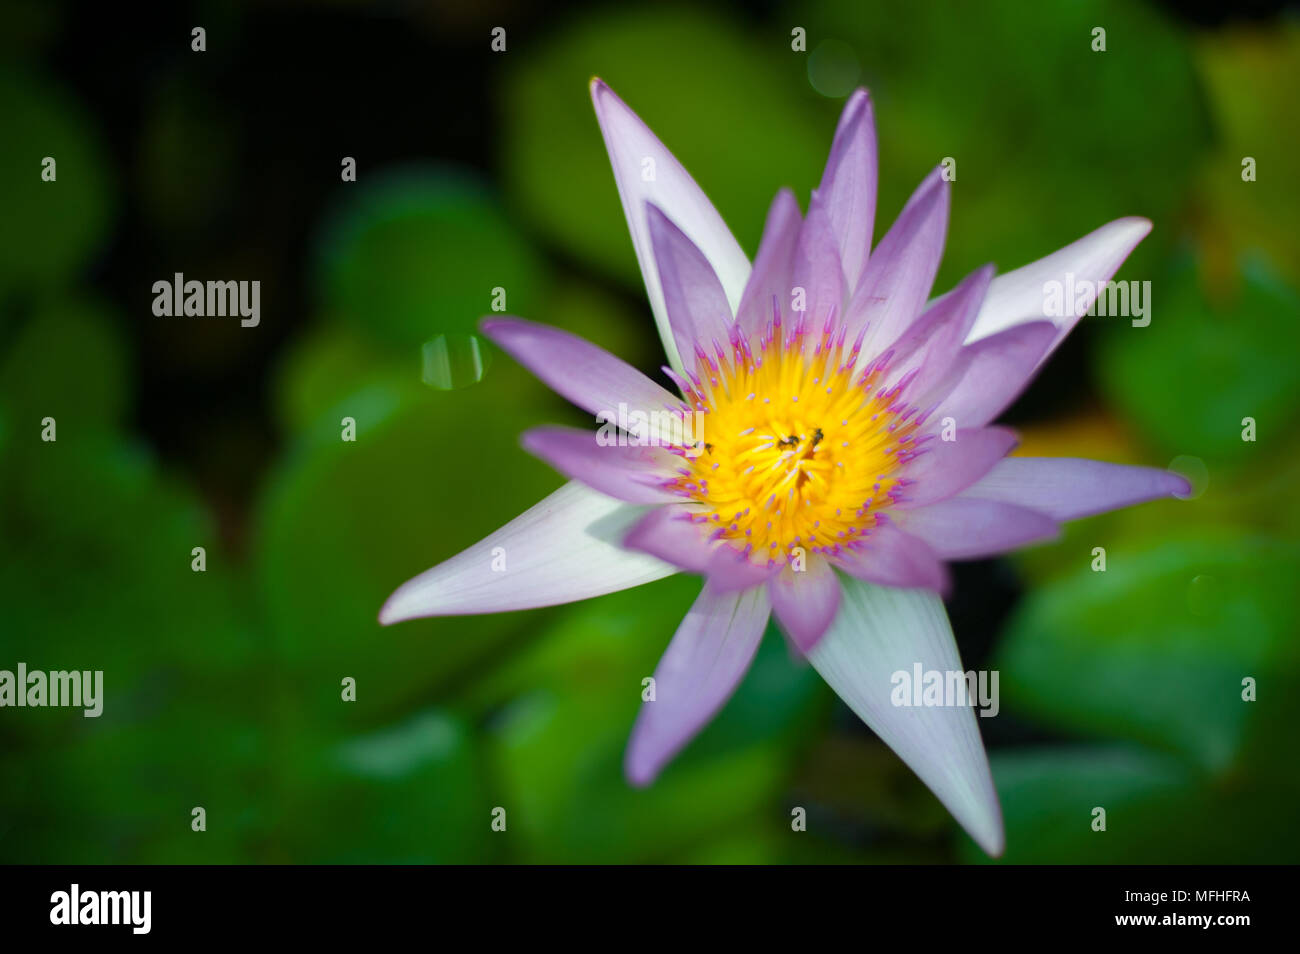 Lotus flower buy stock photos lotus flower buy stock images alamy thai flower at ayutthaya world heritage site thailand thailand is known as a country izmirmasajfo